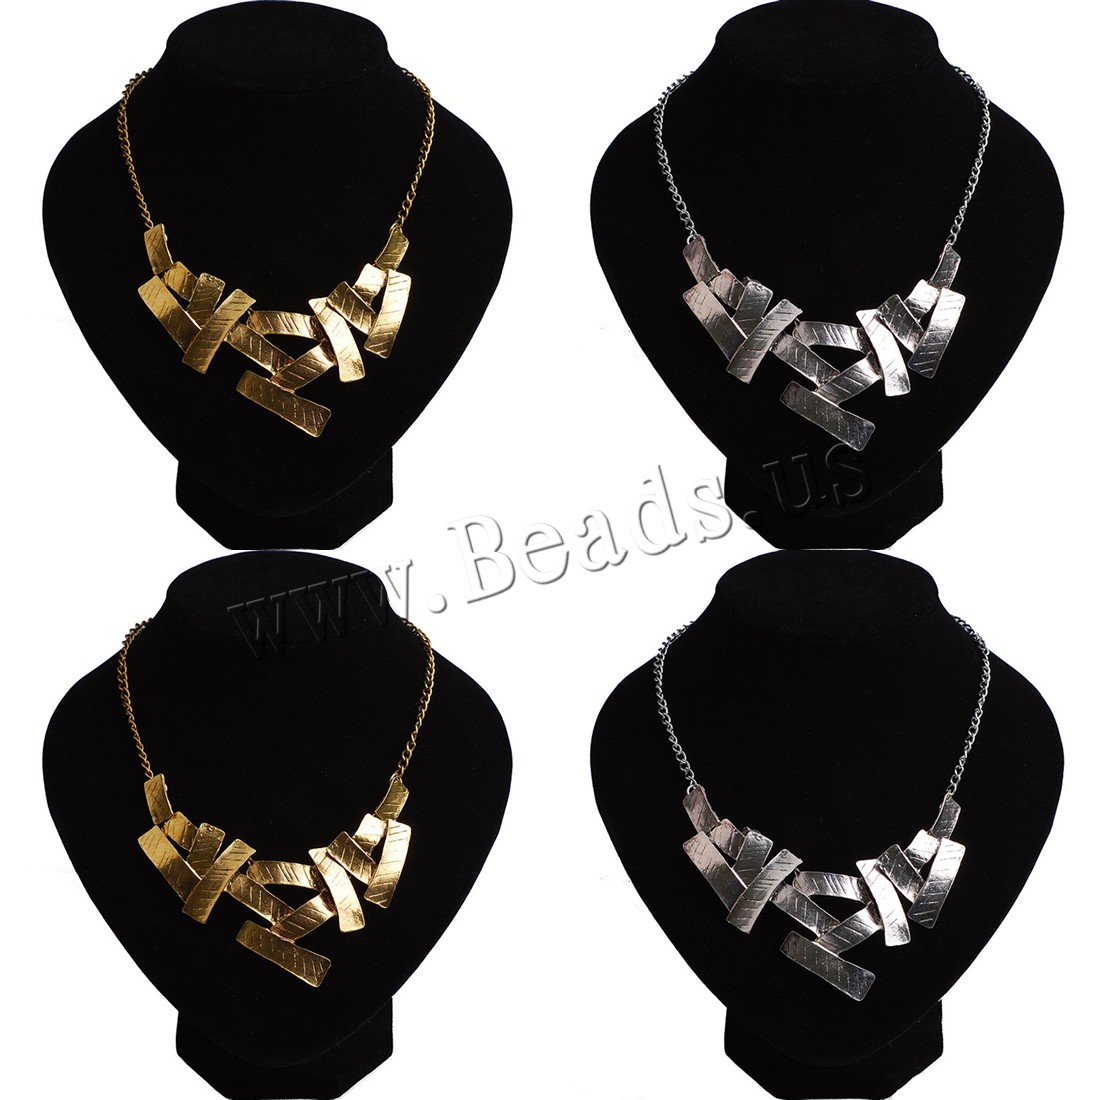 Buy Zinc Alloy Jewelry Necklace 2inch extender chain plated twist oval chain & woman colors choice nickel lead & cadmium free Sold Per Approx 17.7 Inch Strand